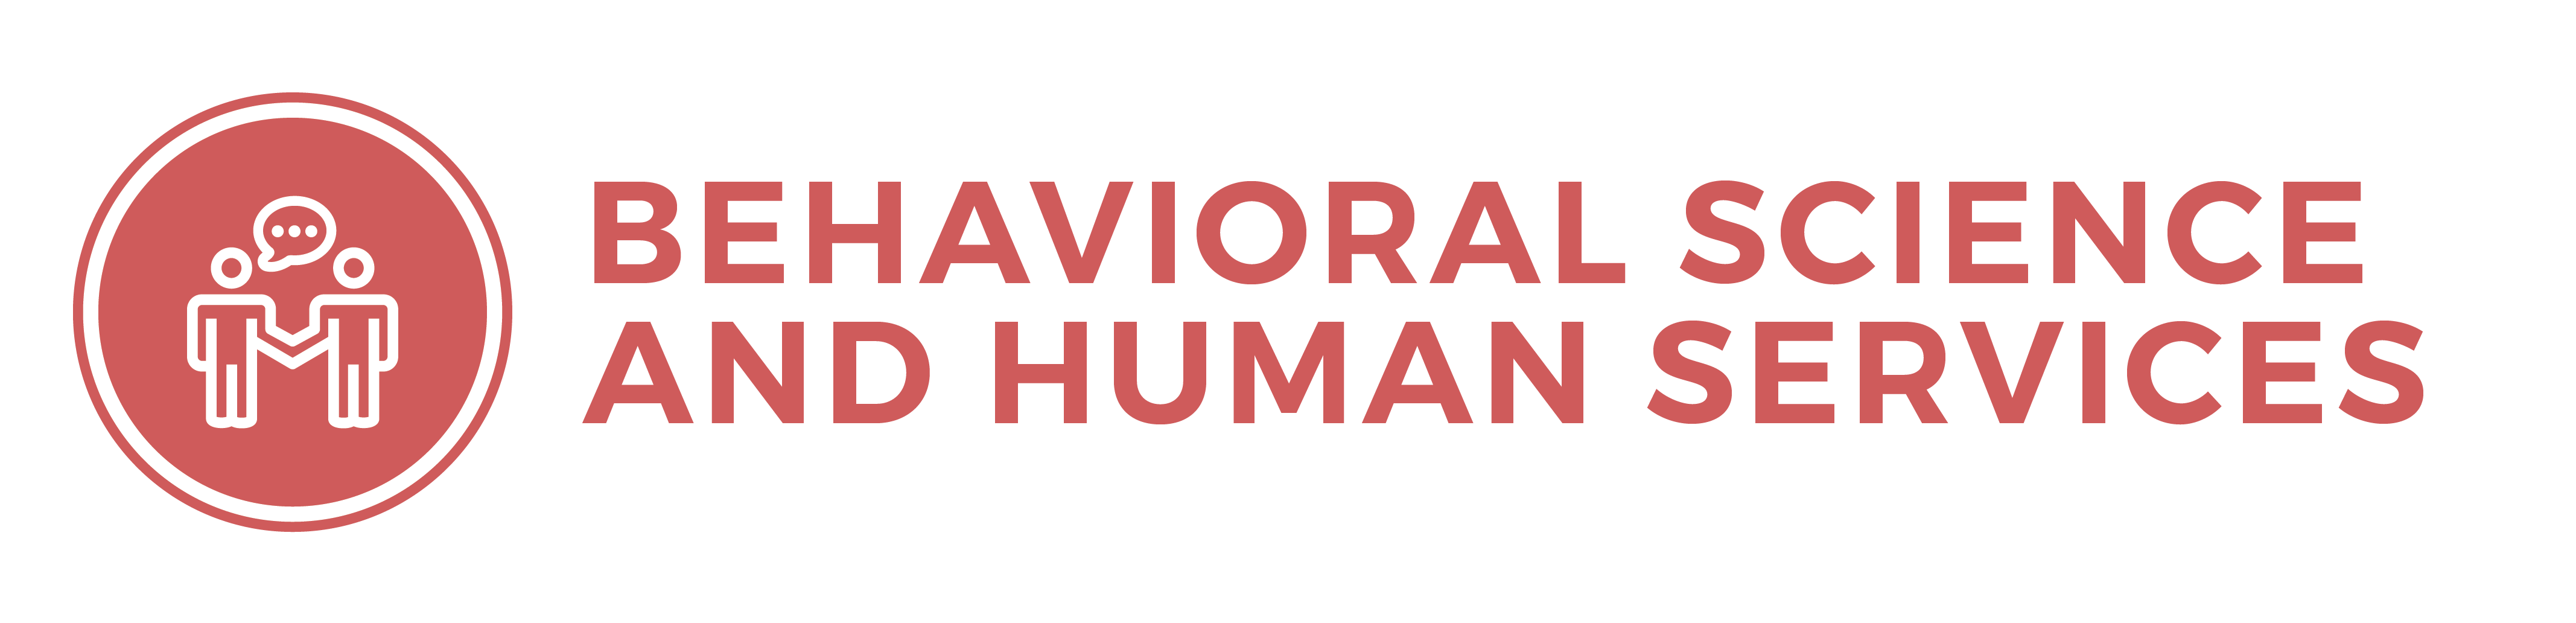 Behavioral Science and Human Services